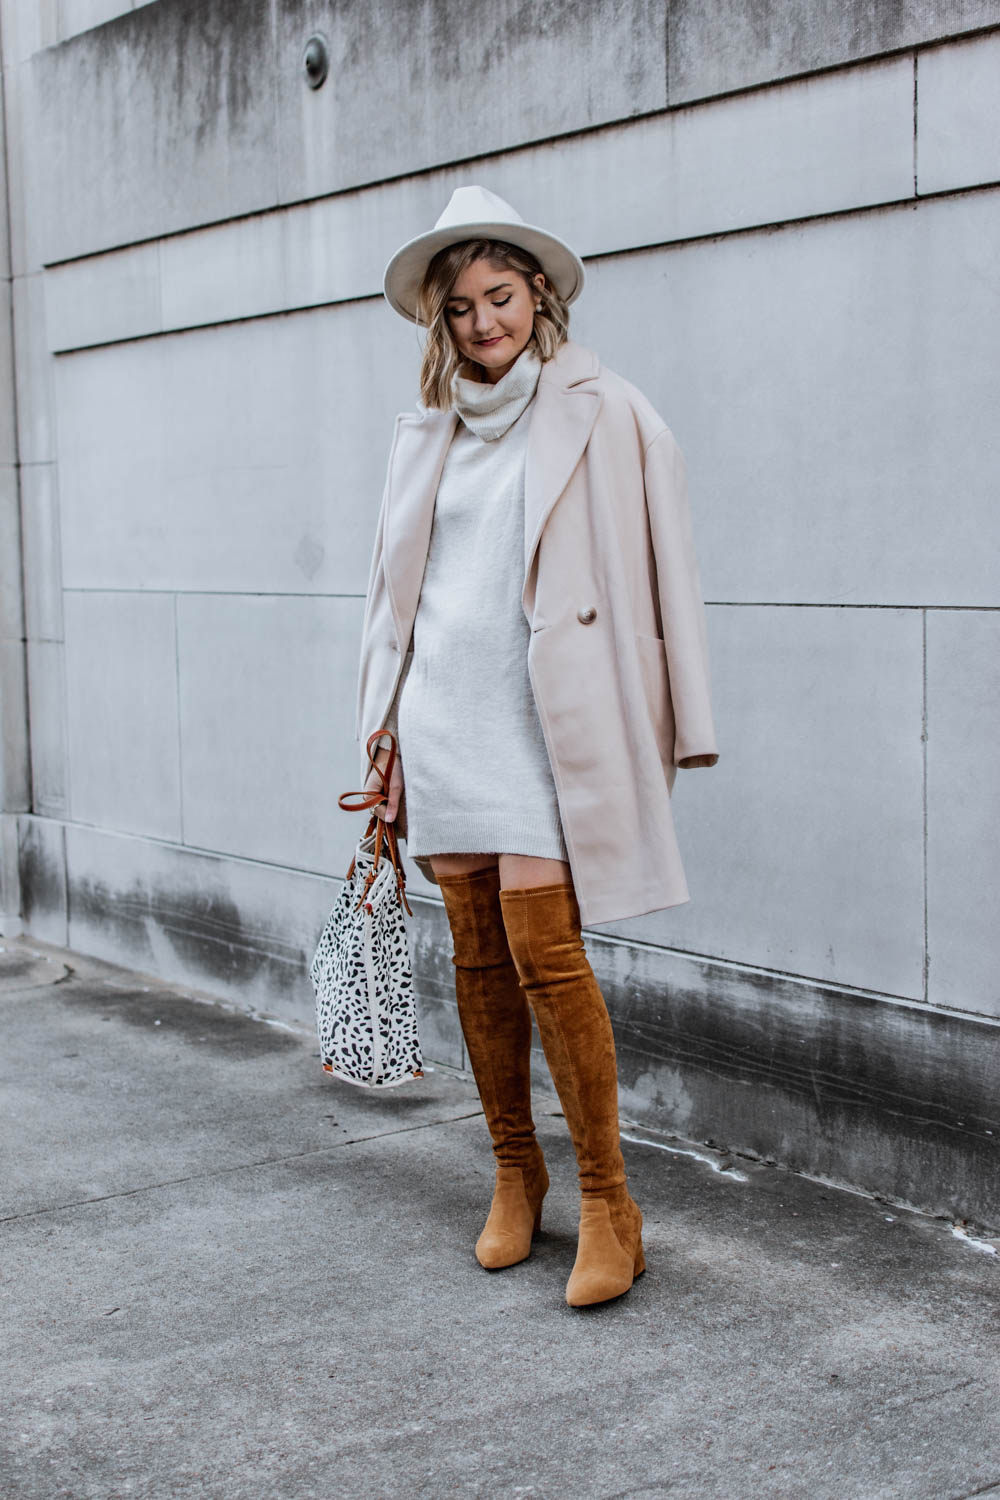 3 ways to wear a sweater dress this winter. Paired with over the knee boots and a long coat.